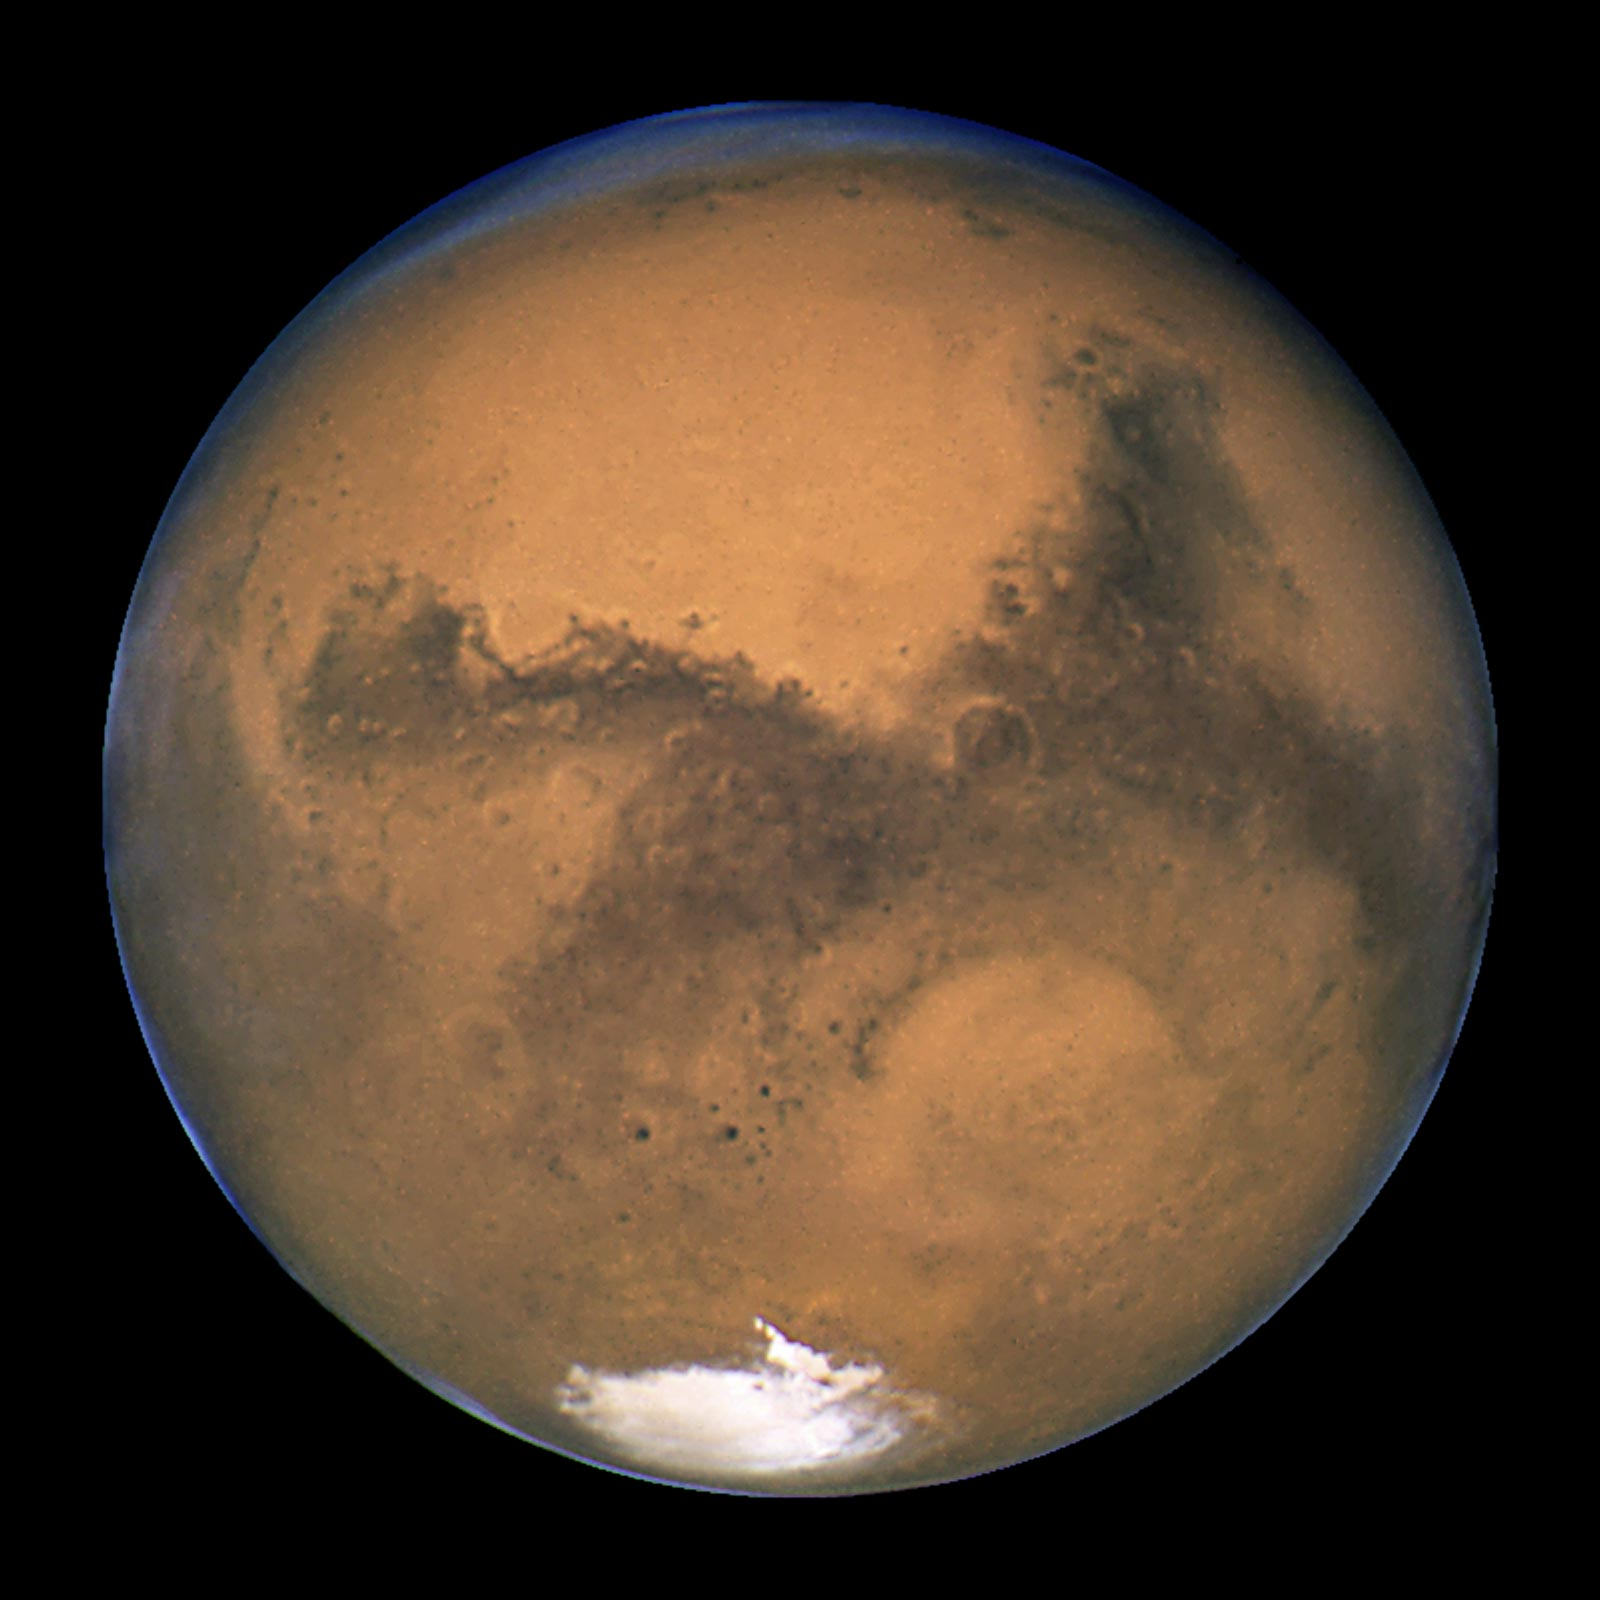 NASA's Hubble Space Telescope Close-up of the Red Planet, Mars | NASA